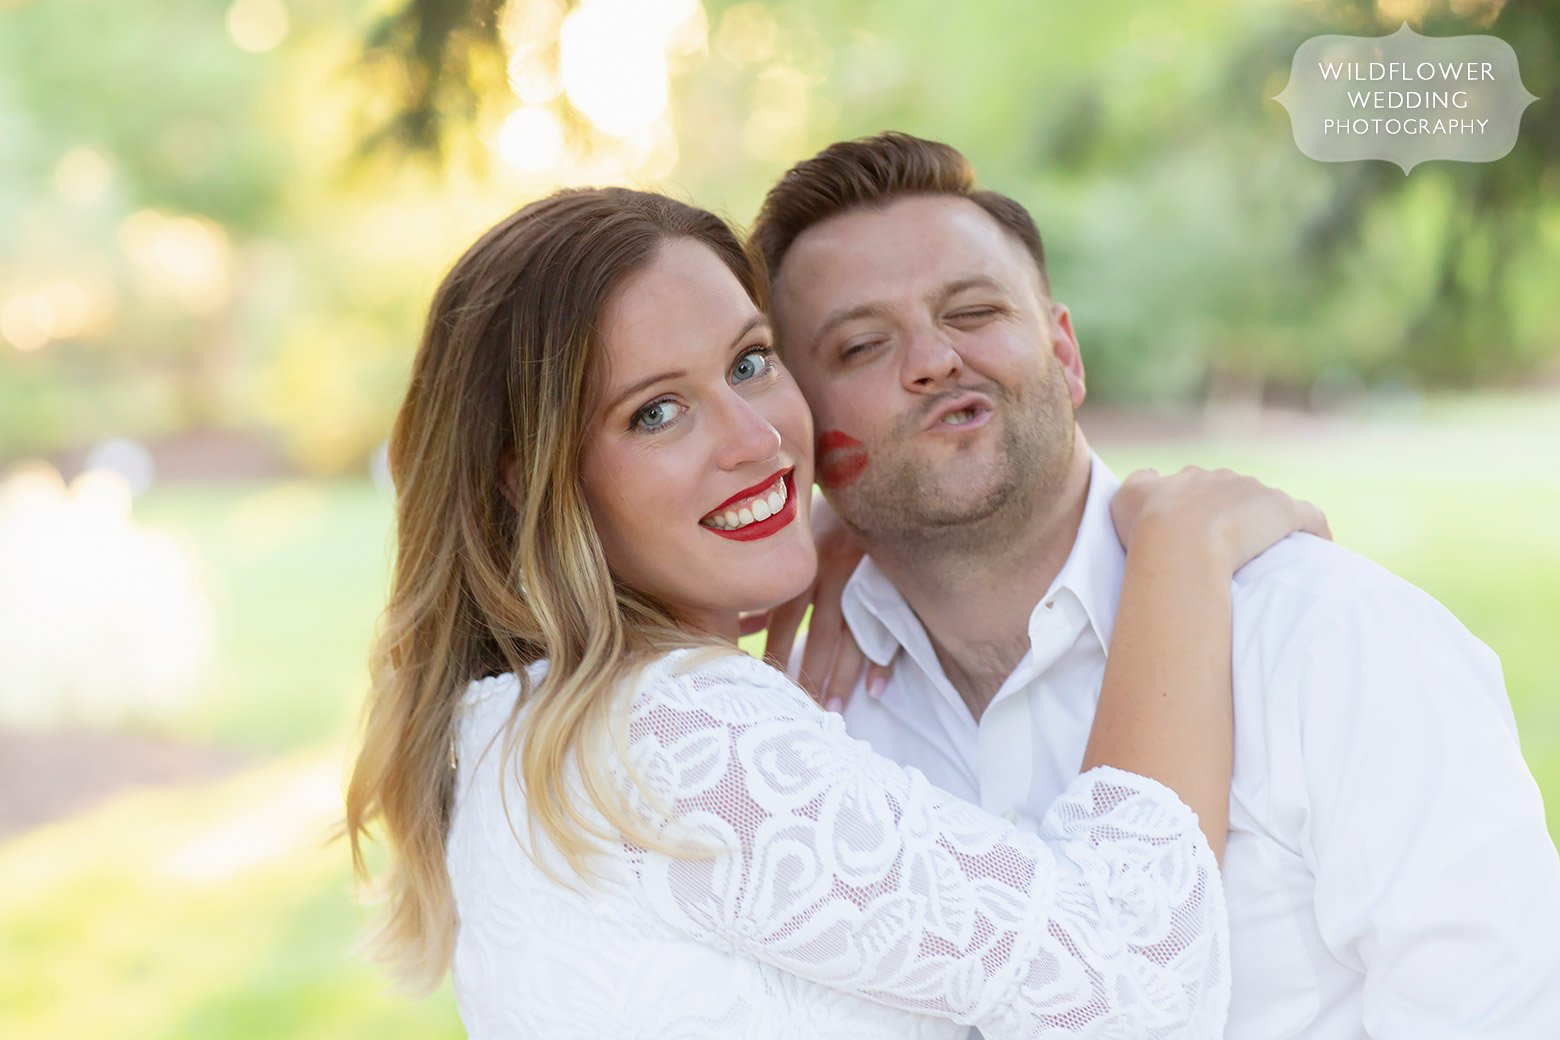 Funny photo of groom's cheek with red lipstick kiss.